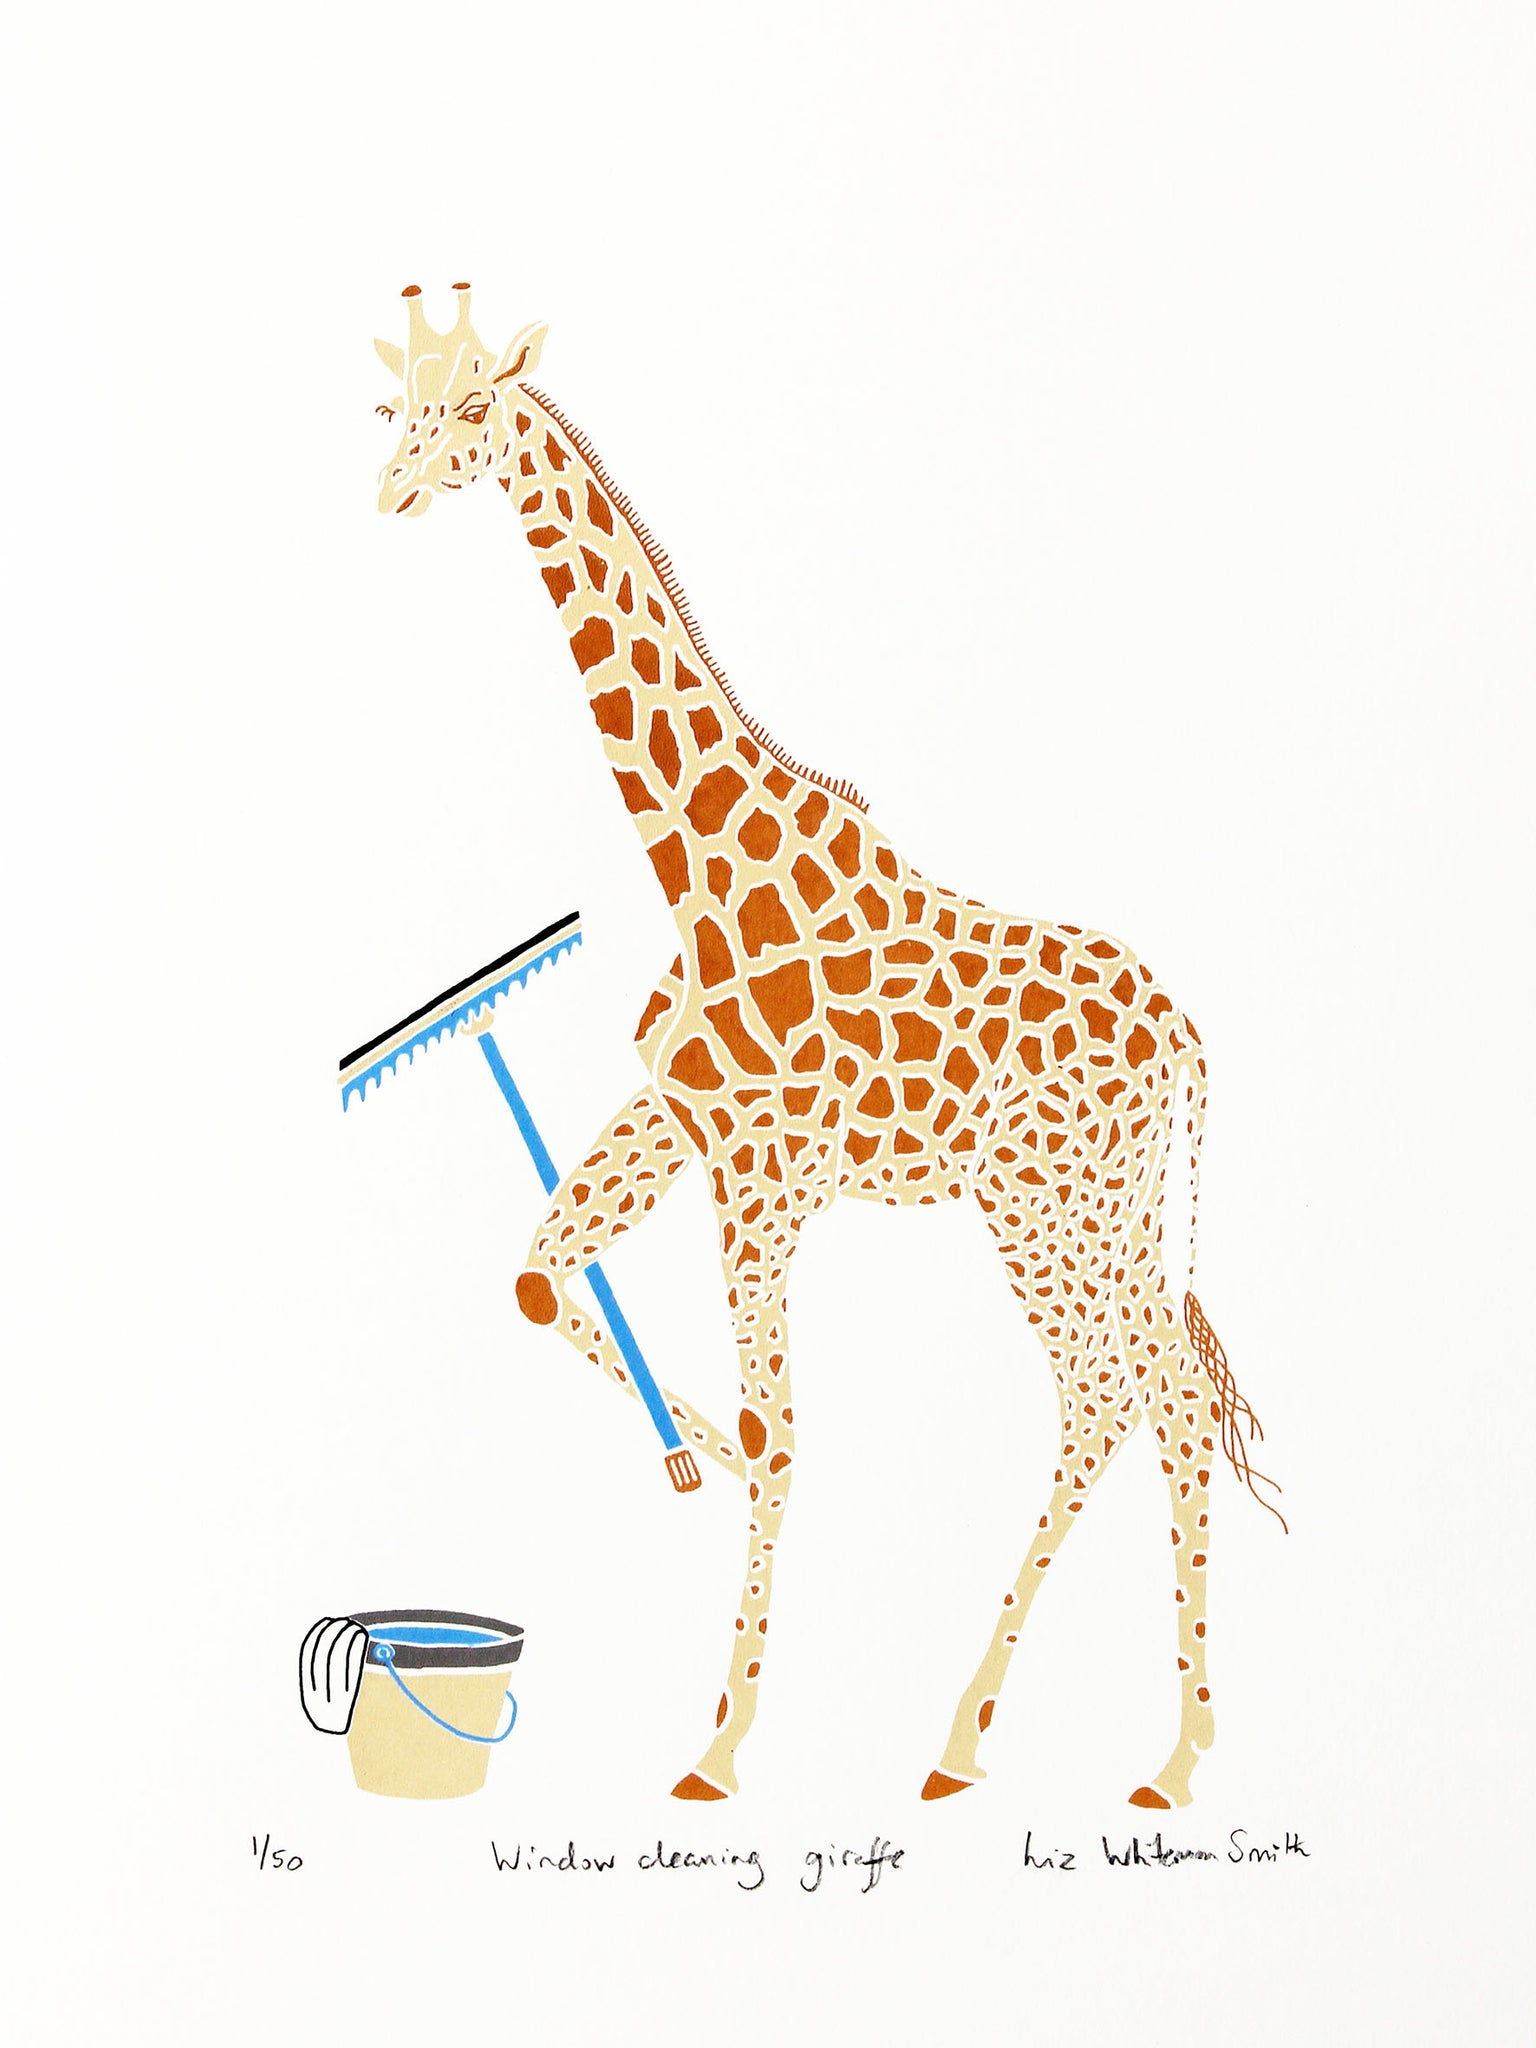 Window cleaning giraffe